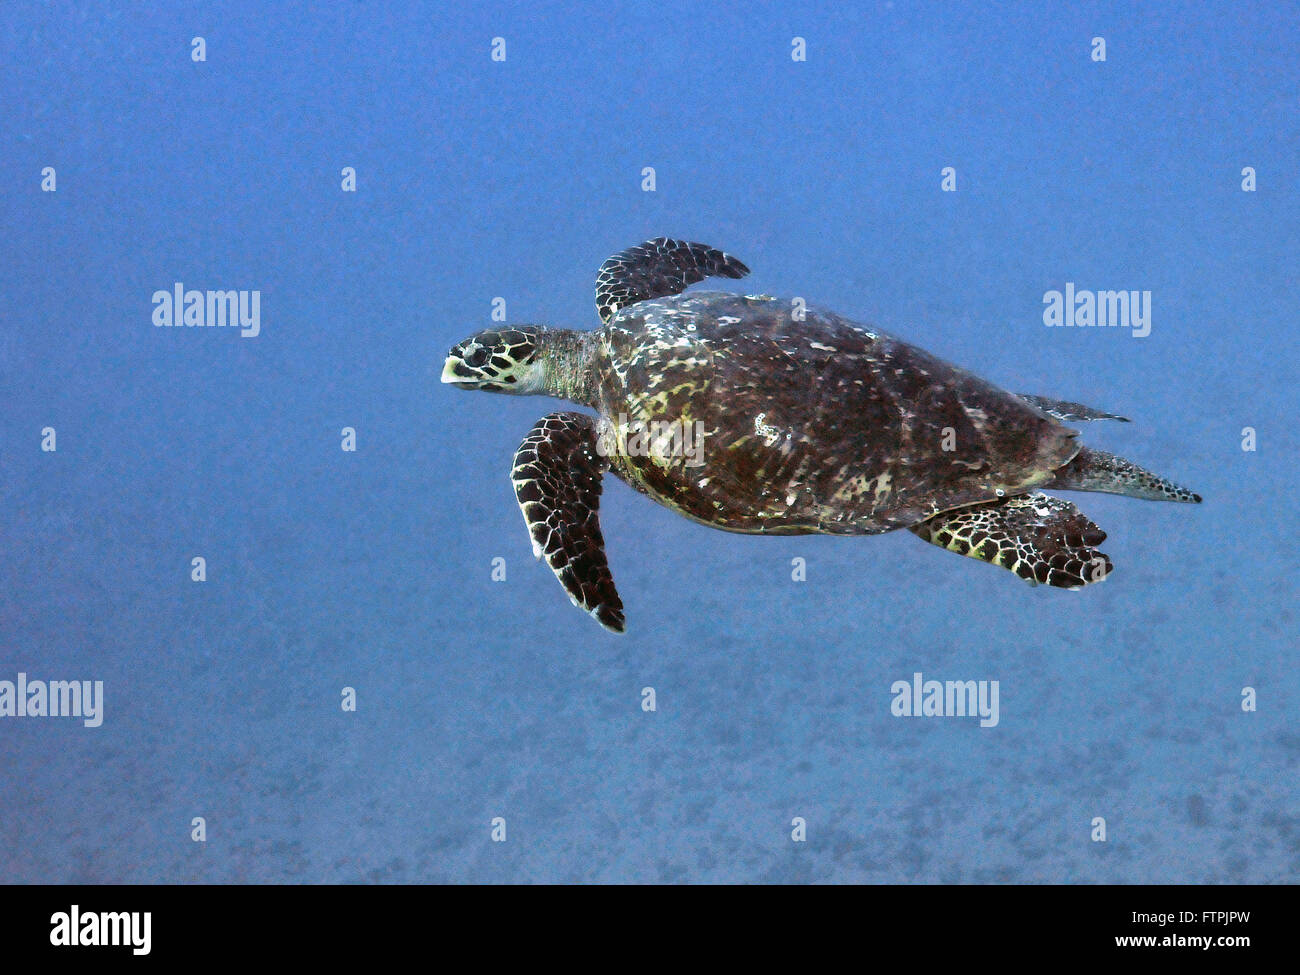 Underwater pictures on the Brazilian coast - Hawksbill Turtle - Eretmochelys imbricata - Stock Image